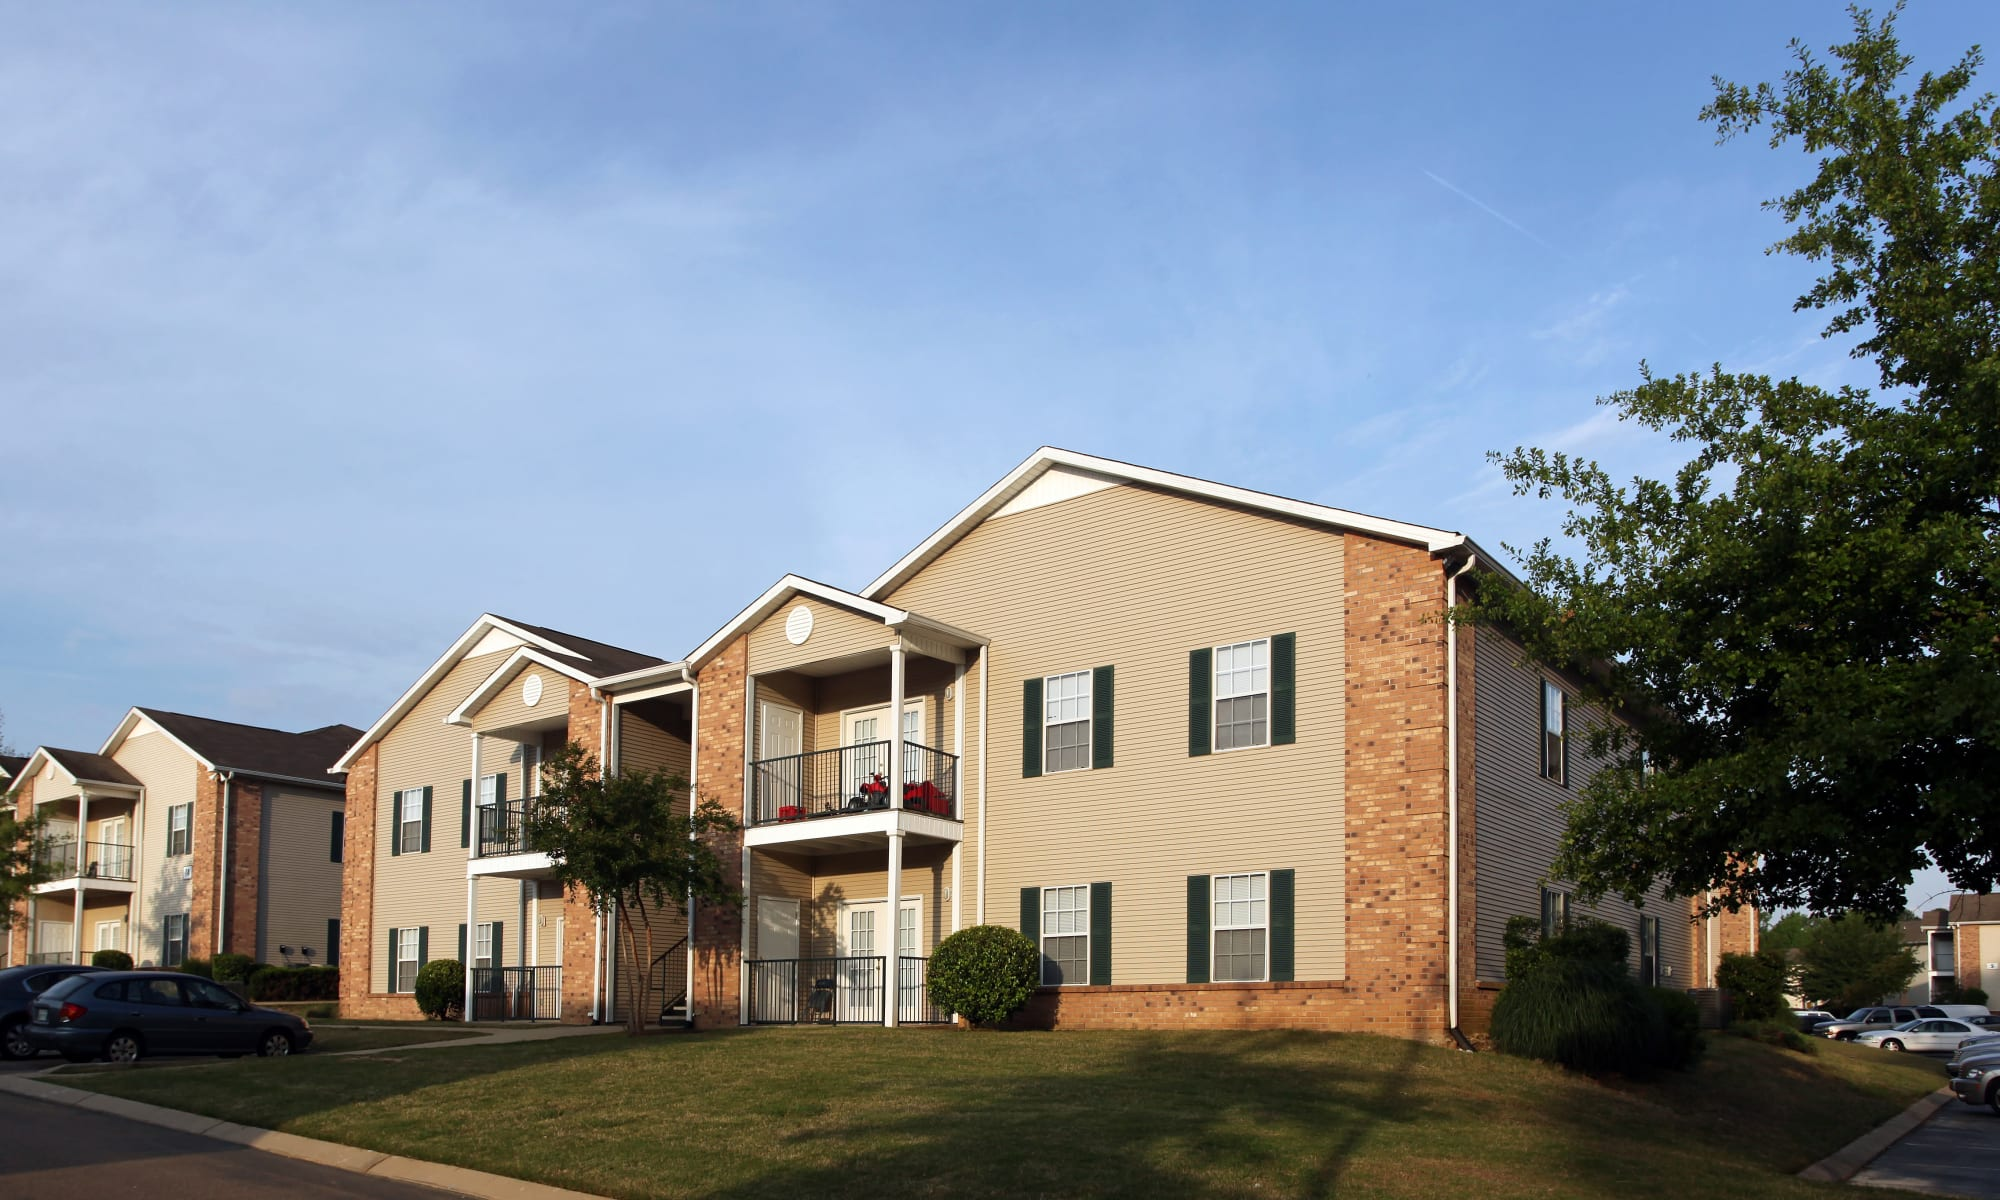 Beautifully landscaped apartments at Highland Park Apartments in Jackson, Mississippi